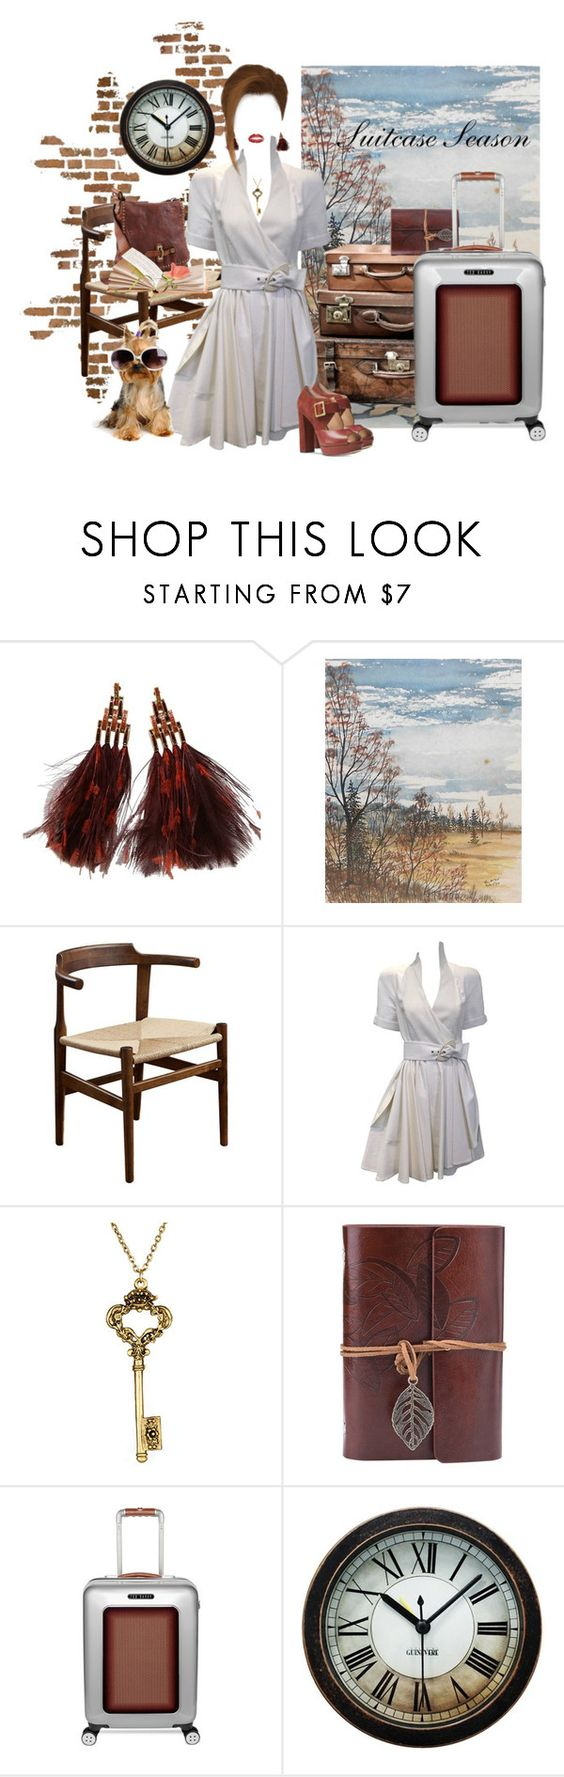 """""""Suitcase Season"""" by neicy-i ❤ liked on Polyvore featuring interior, interiors, interior design, home, home decor, interior decorating, Louis Vuitton, Universal Lighting and Decor, Thierry Mugler and Campomaggi"""